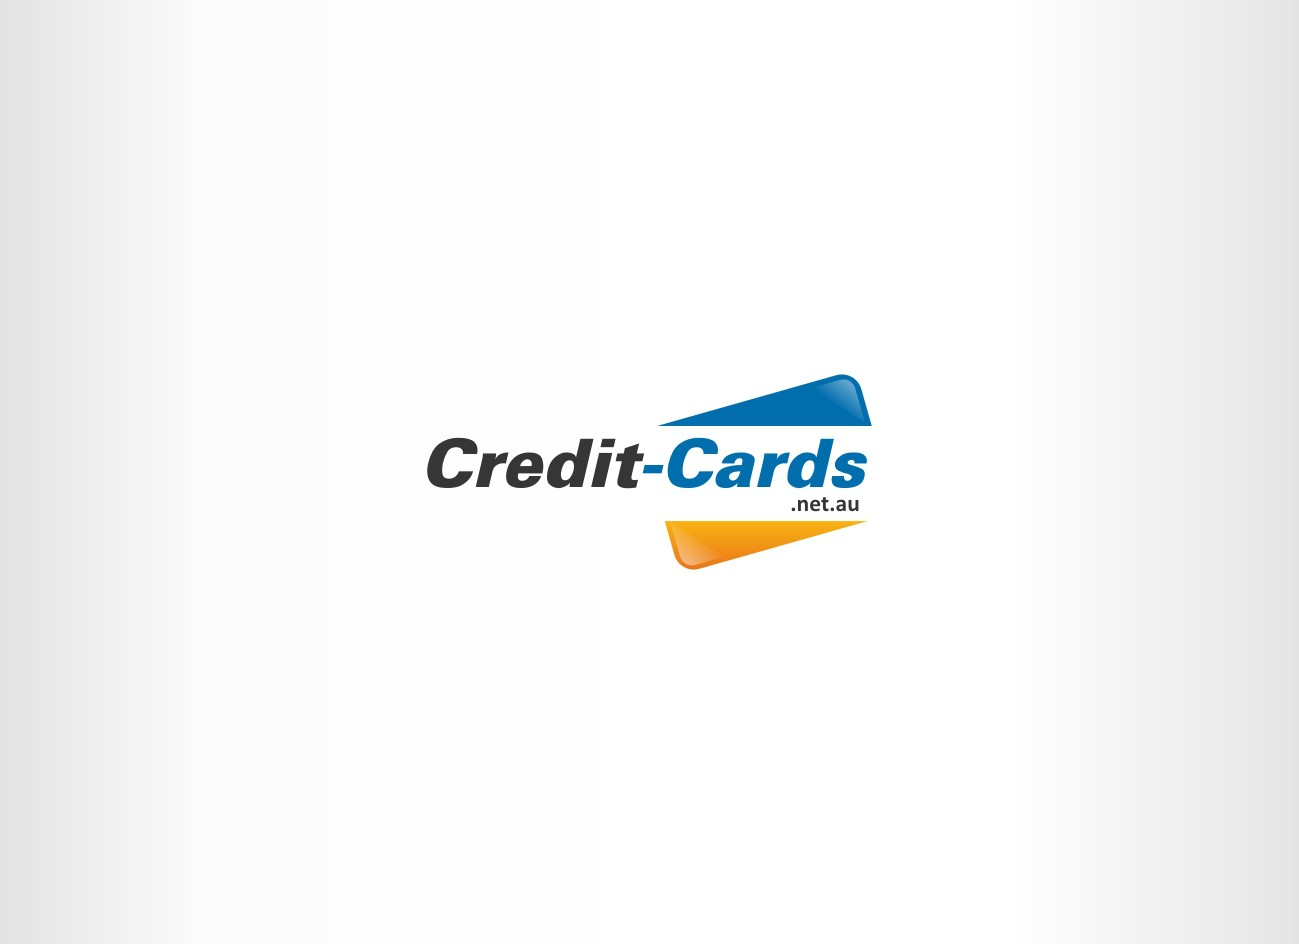 Help Credit-Cards.net.au with a new logo